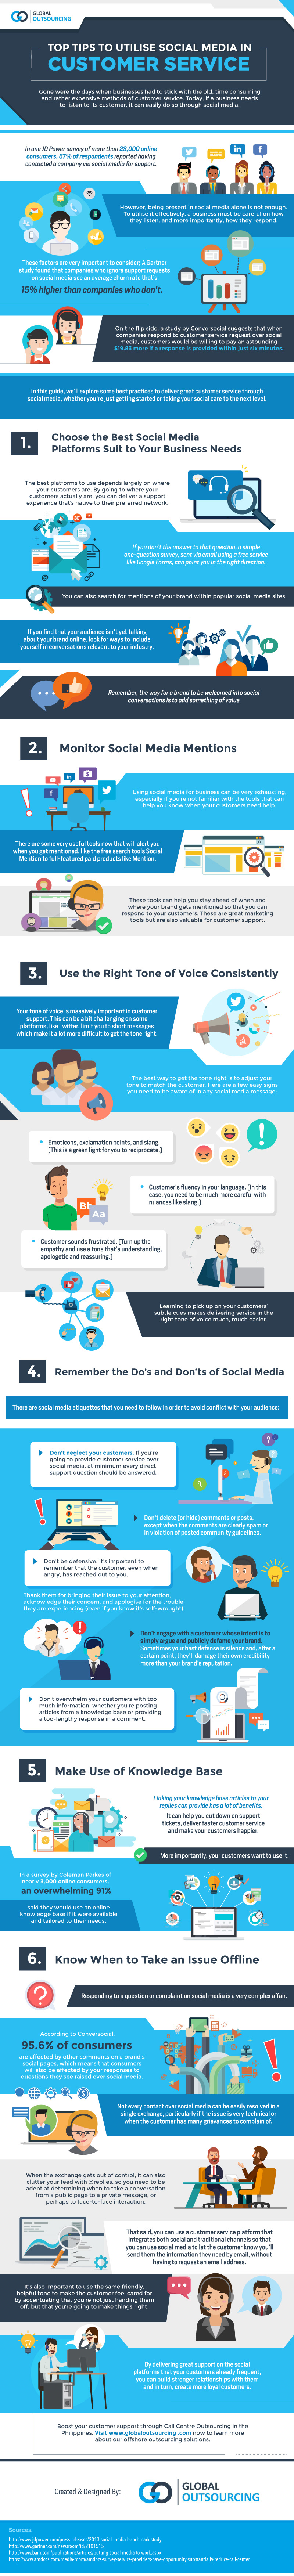 Top Tips to Utilize Social Media in Customer Service [Infographic]